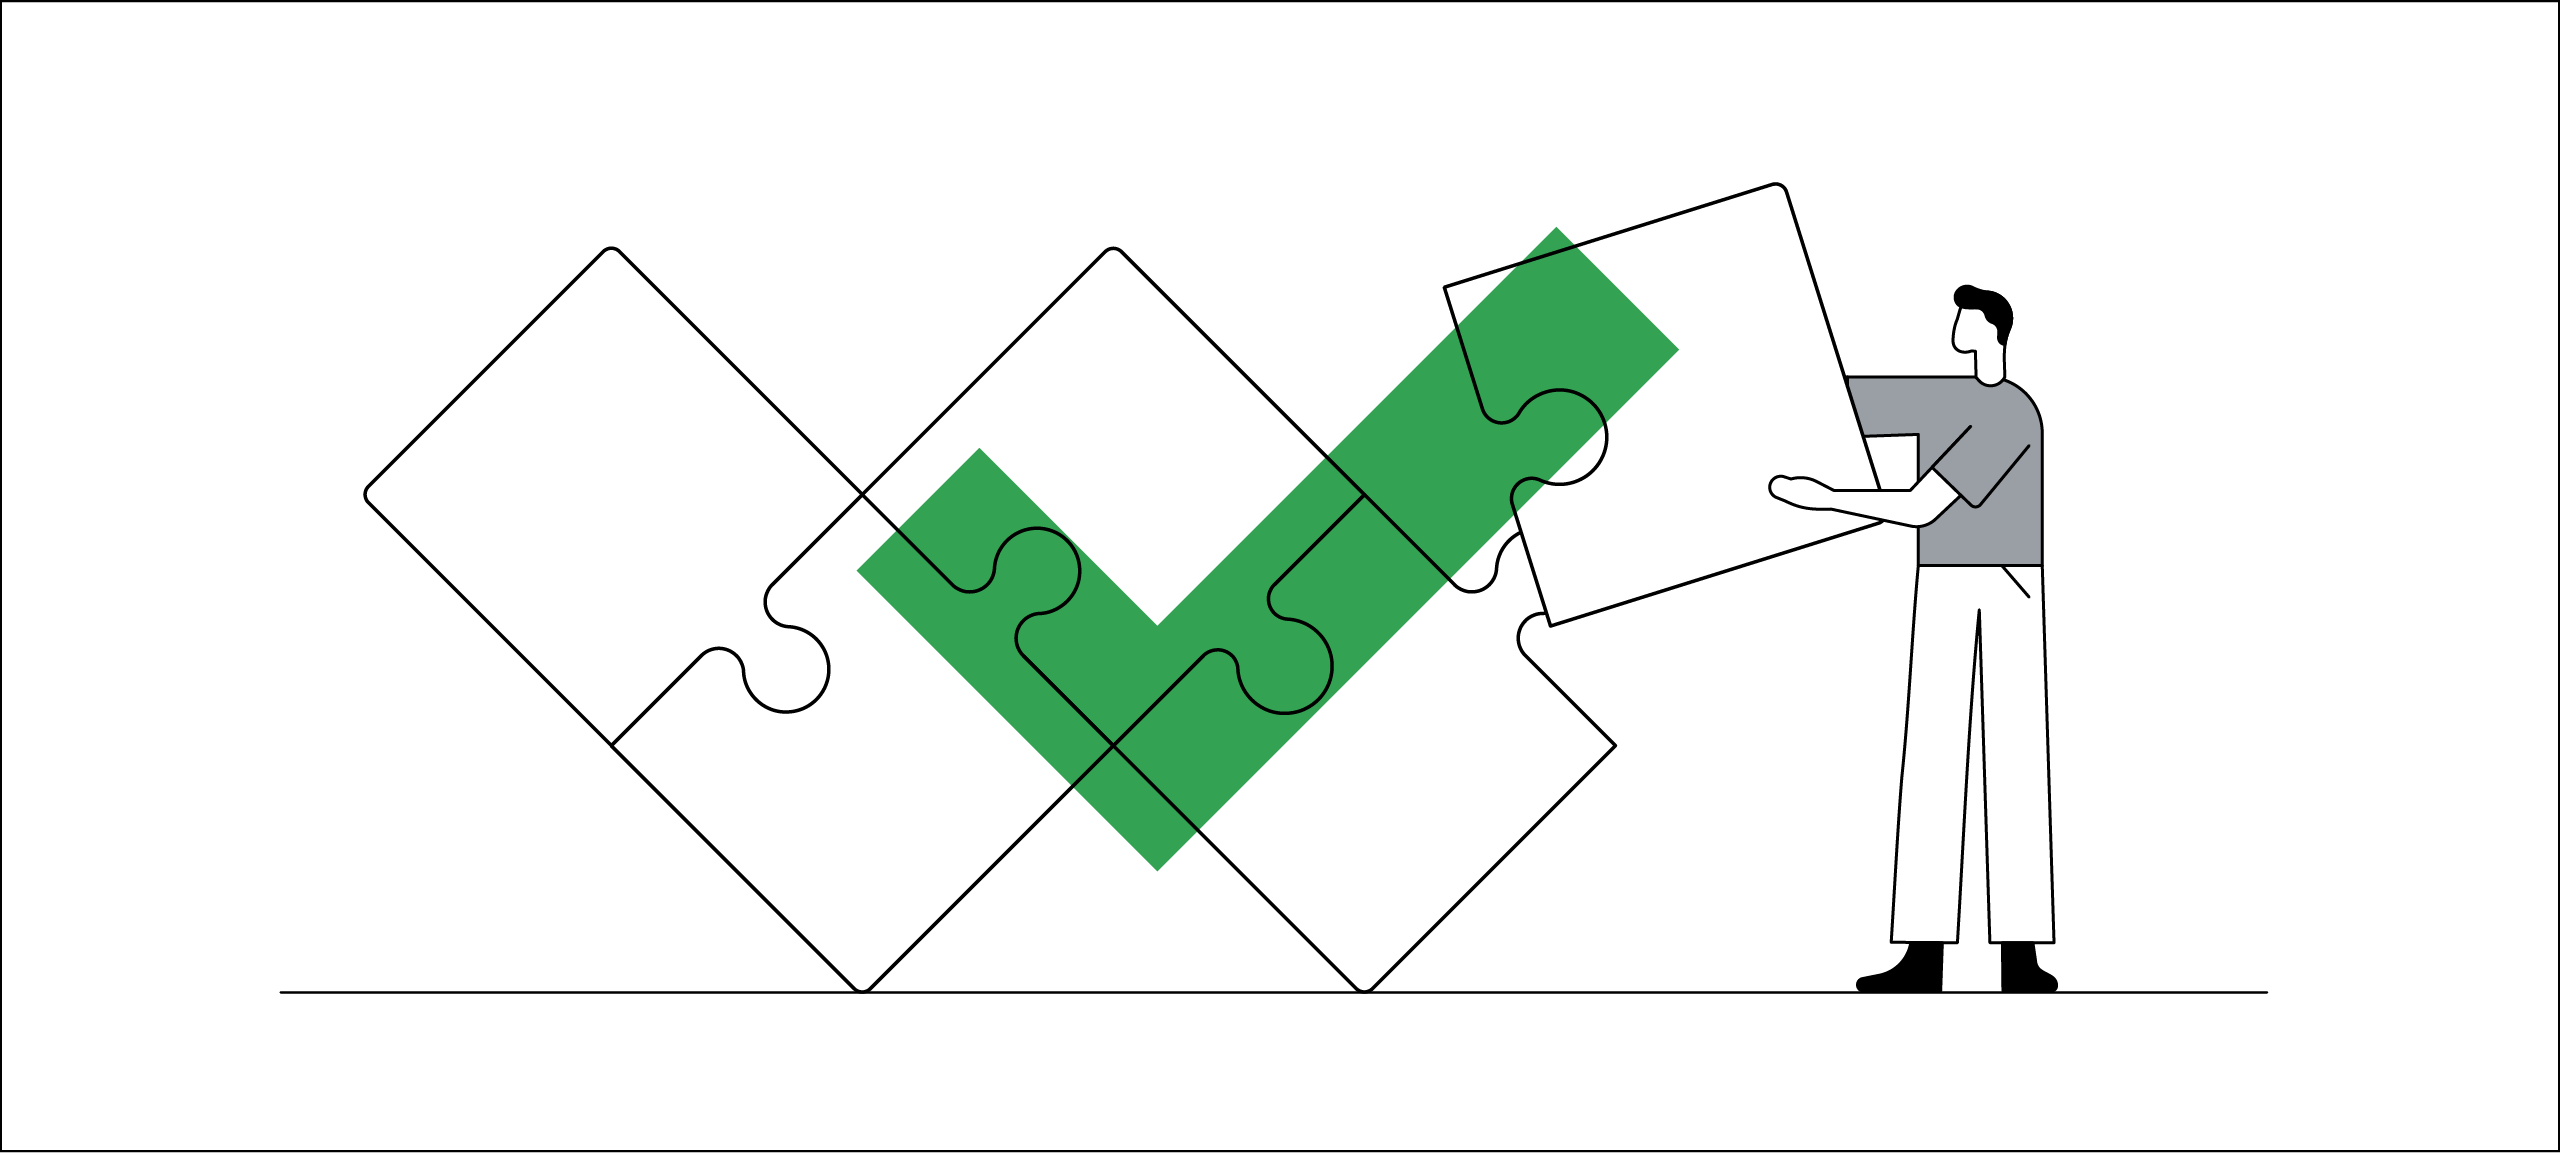 A line drawing illustrates problem solving. A man with black hair adds the final piece to a life-sized jigsaw puzzle. A green checkmark hovers over the W-shaped puzzle to indicate its completion.